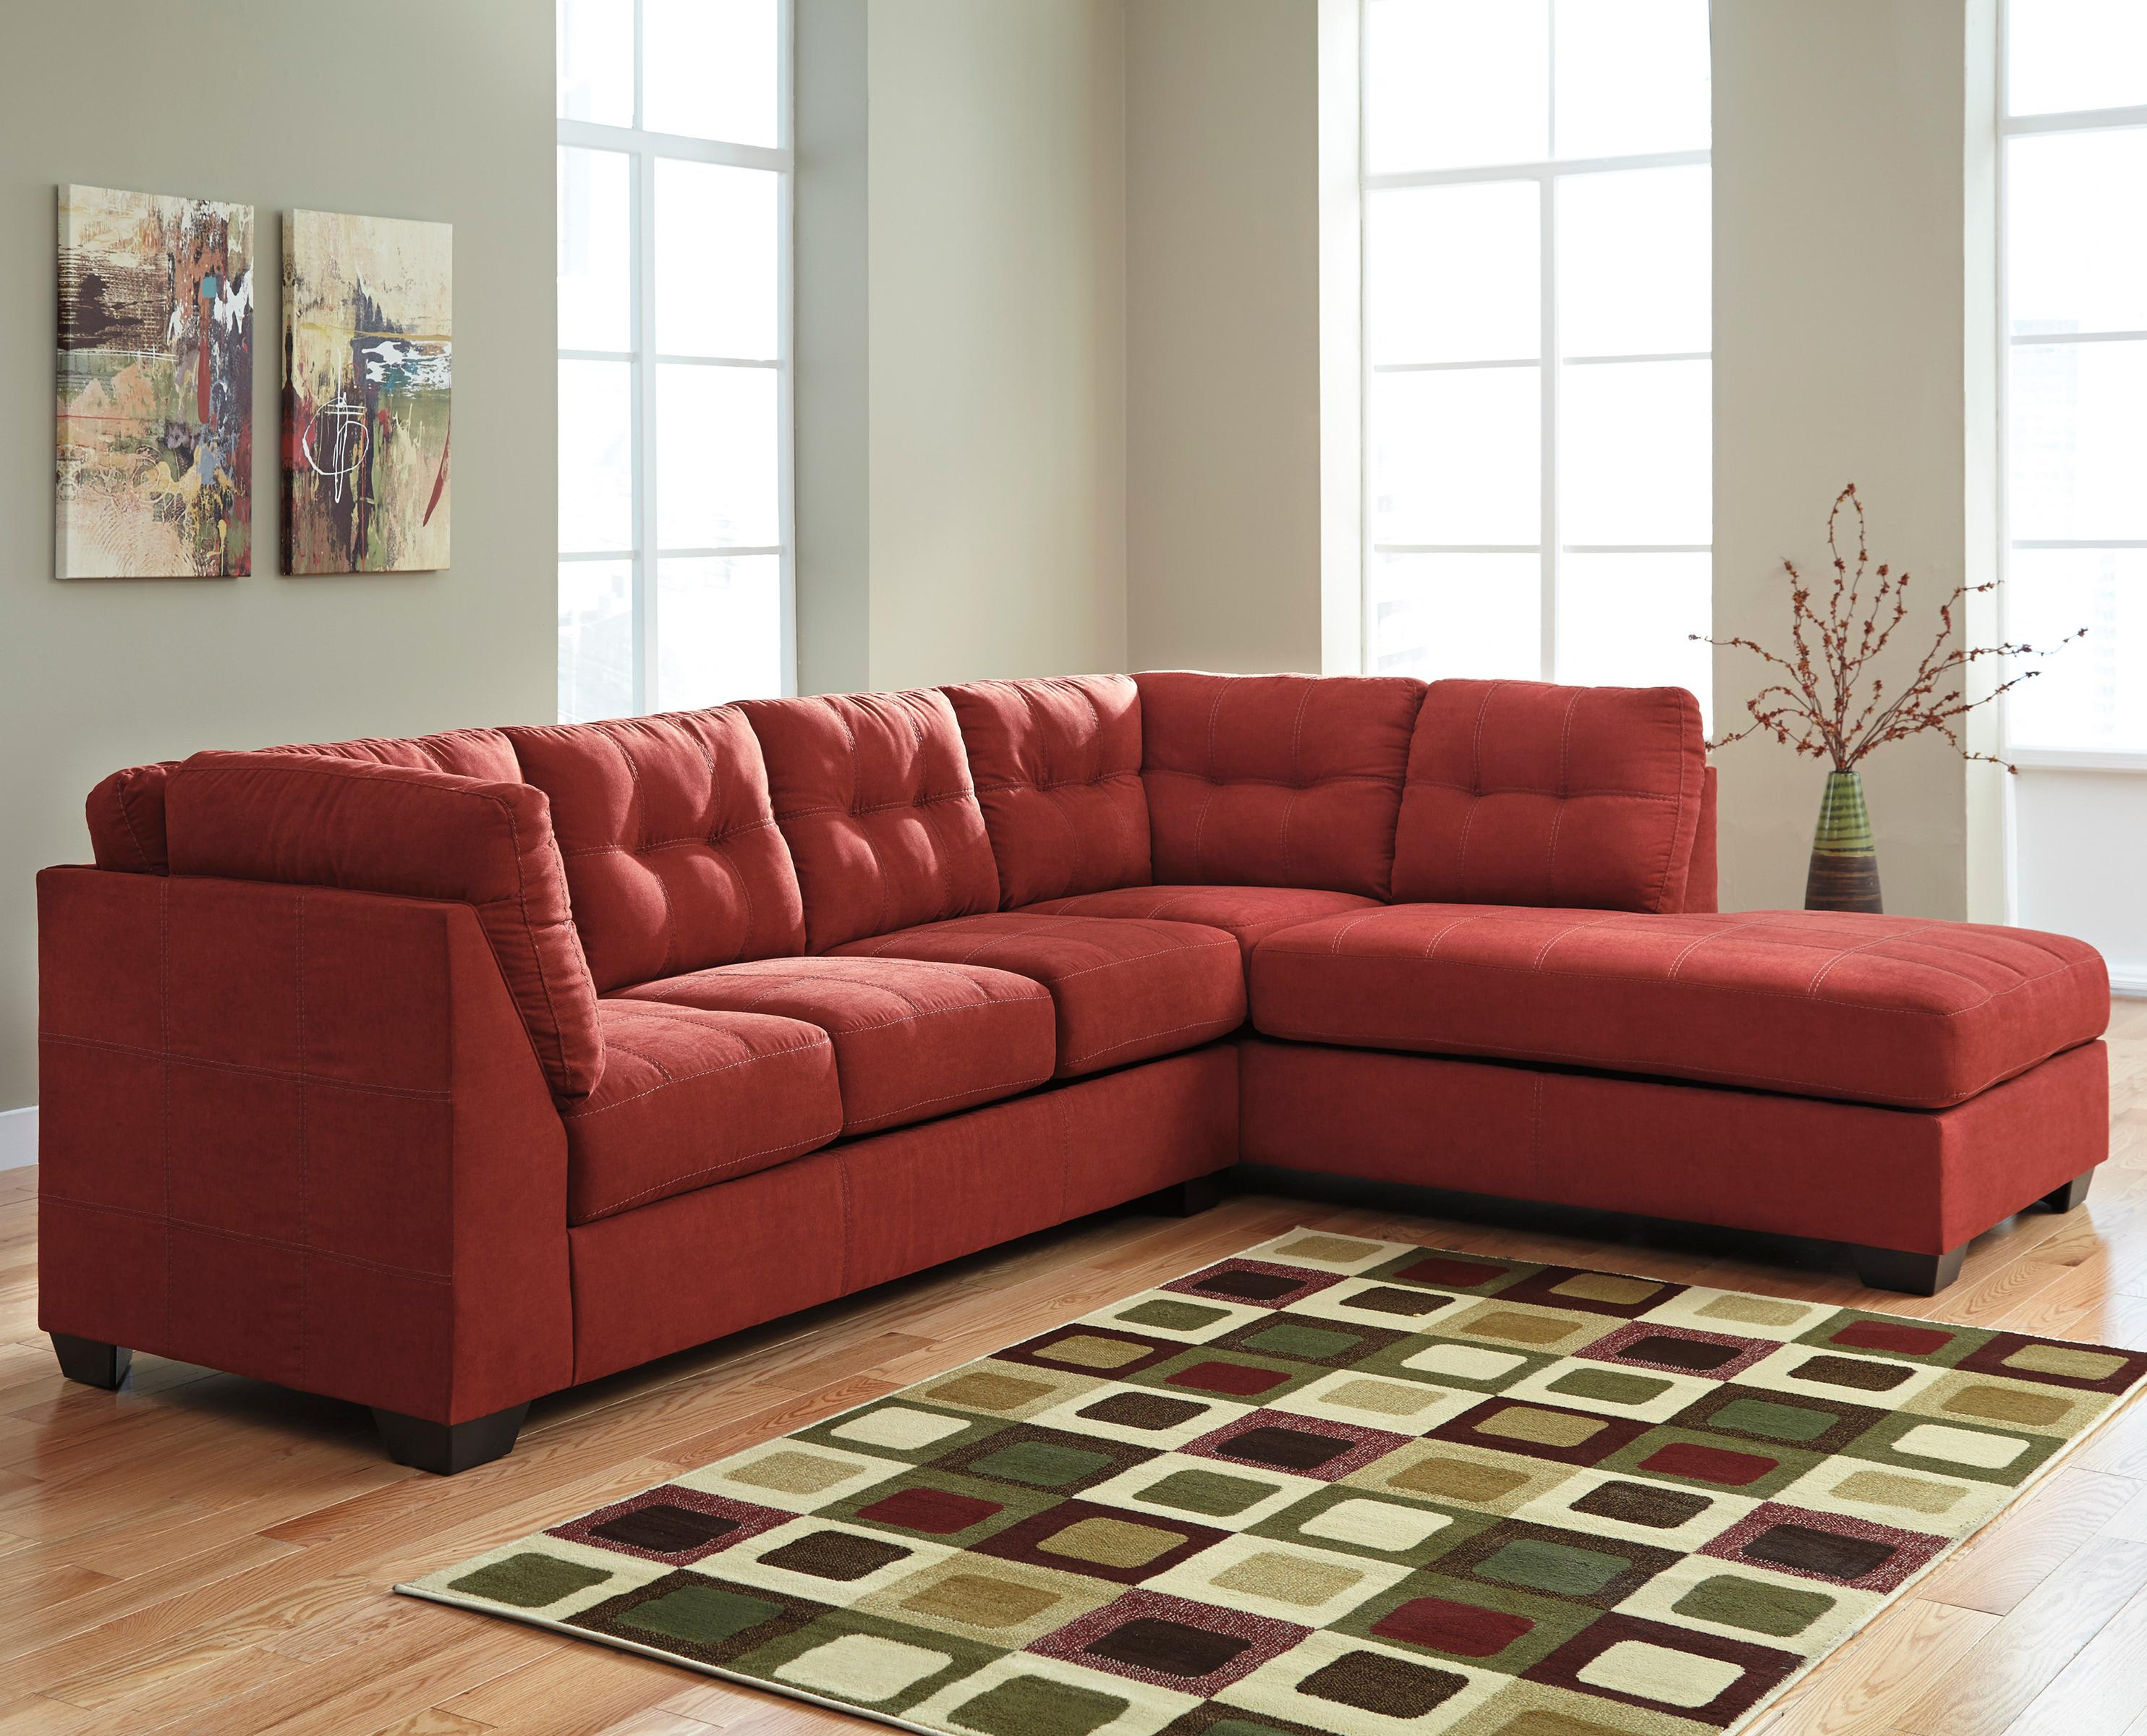 Benchcraft Maier - Sienna 2-Piece Sectional with Right Chaise - Item Number: 4520266+17